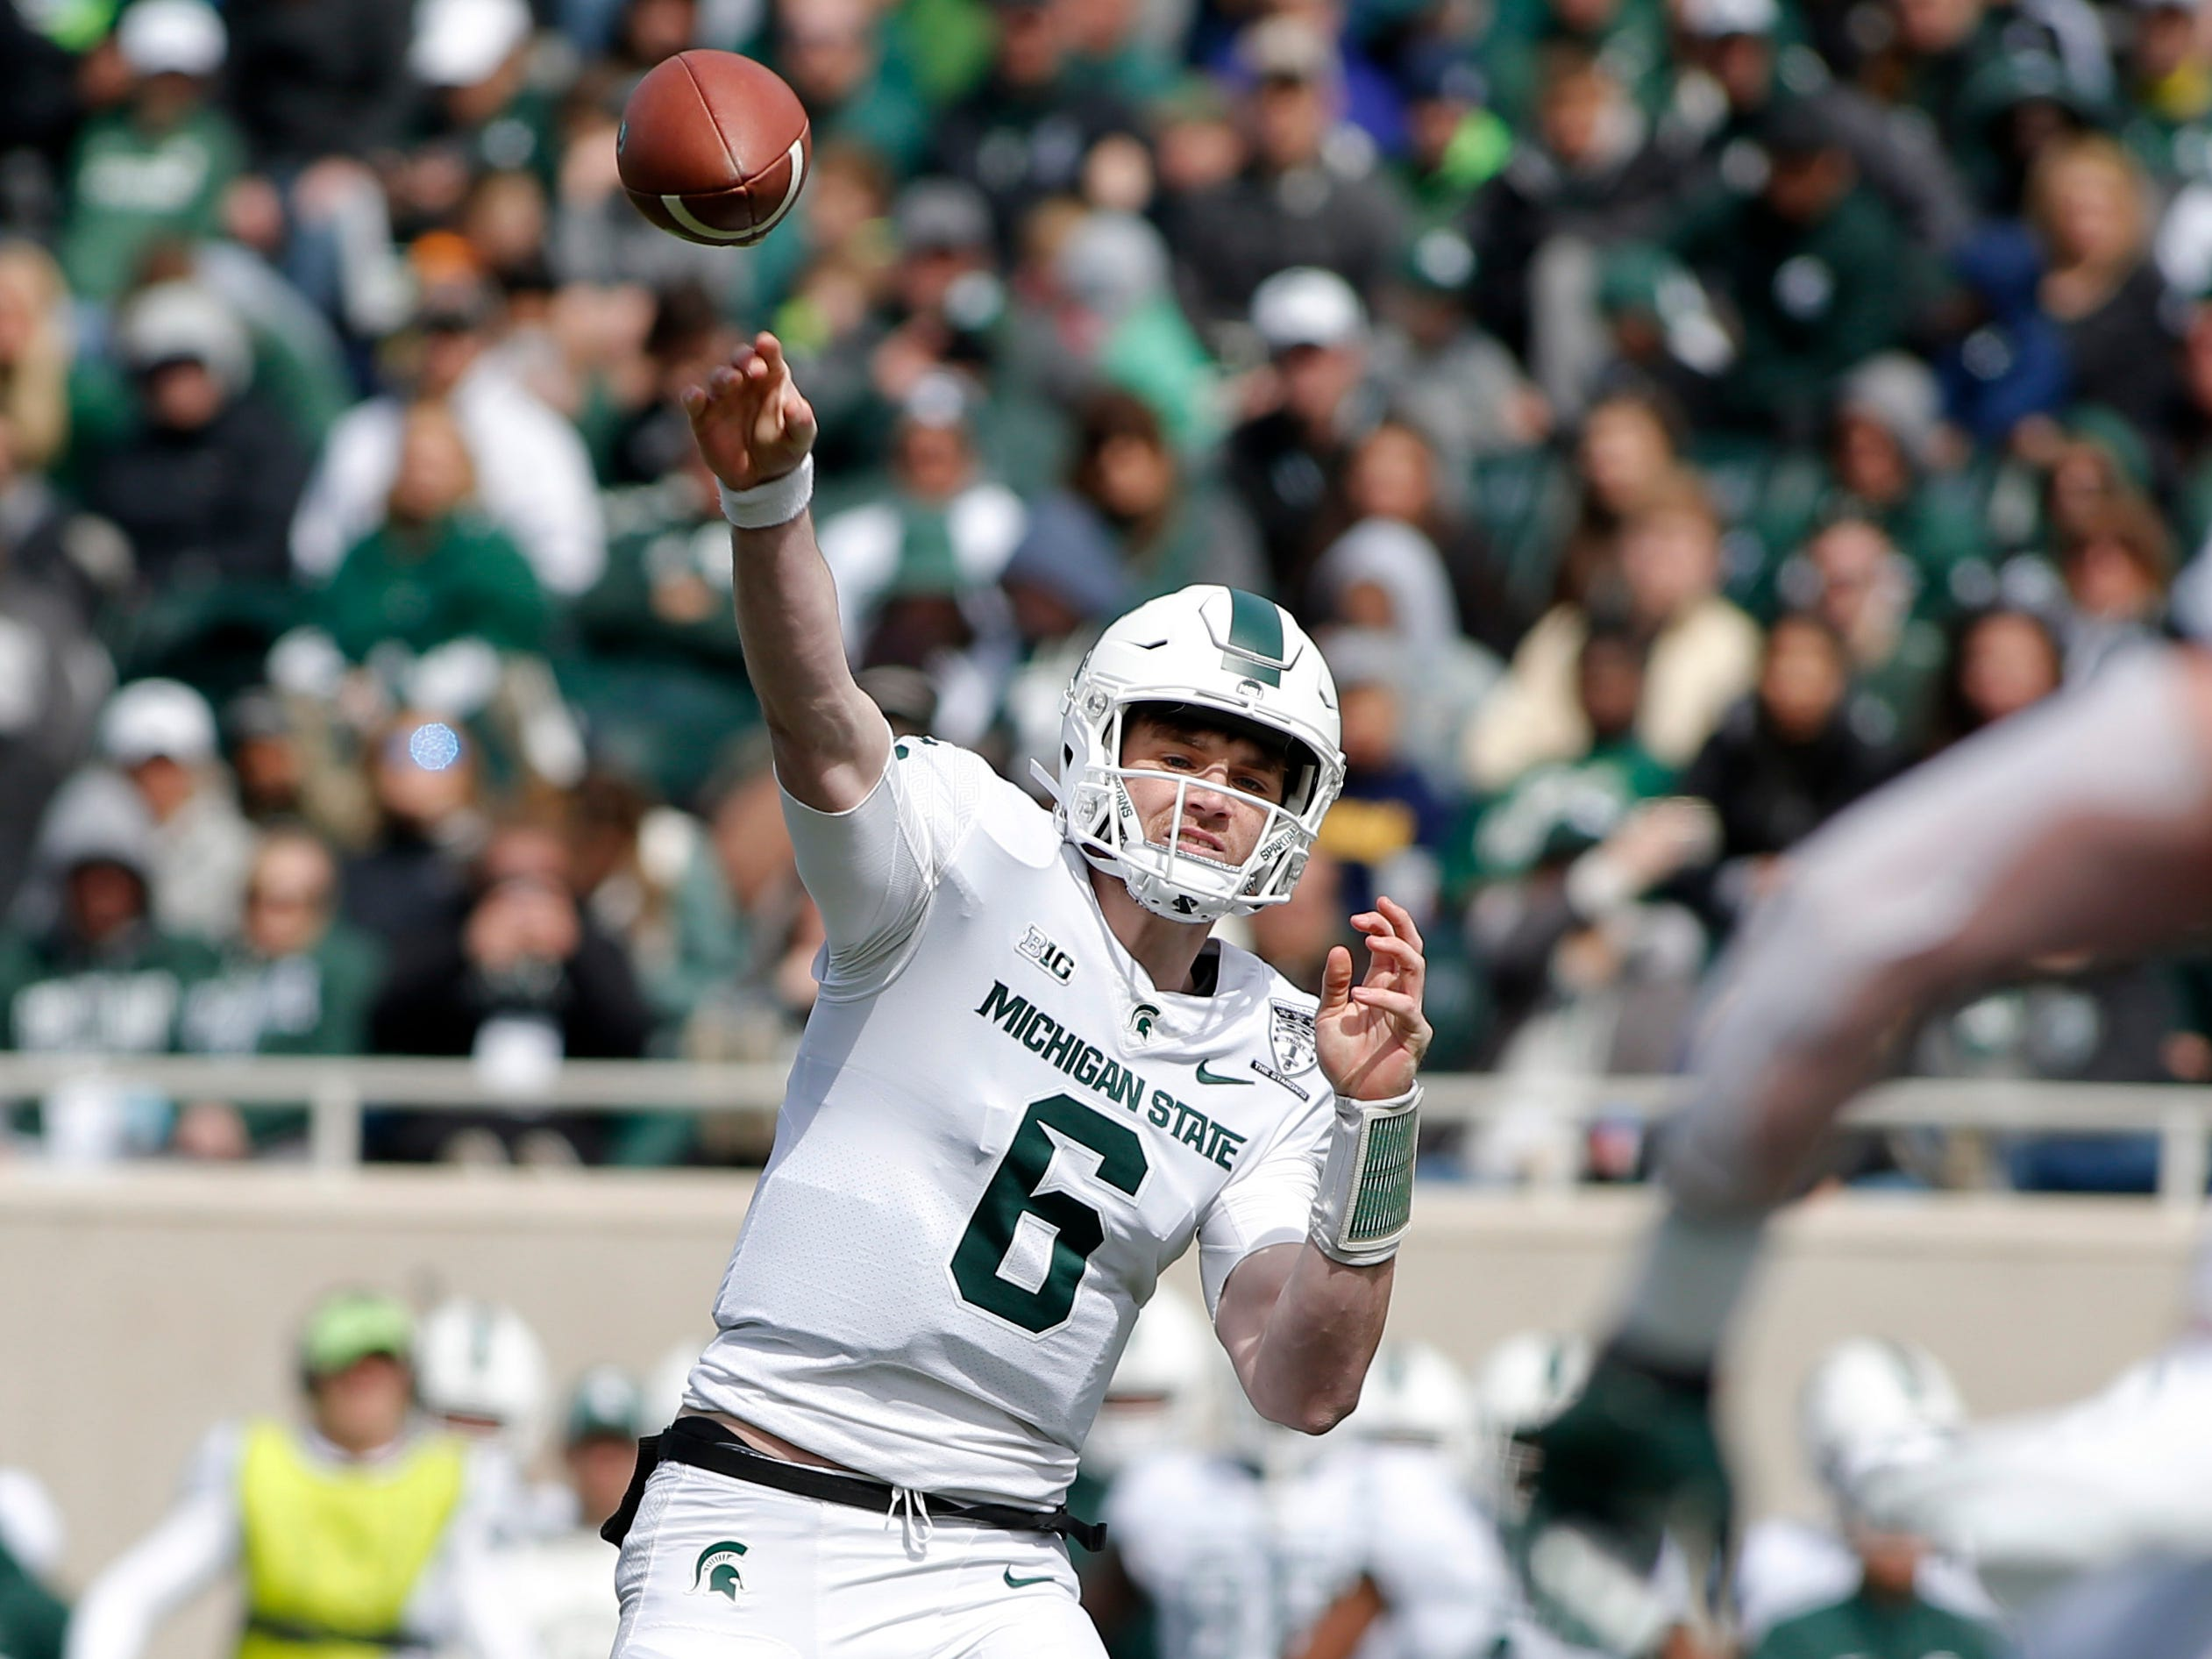 Michigan State quarterback Theo Day throws during an NCAA college football spring scrimmage game, Saturday, April 13, 2019, in East Lansing, Mich. (AP Photo/Al Goldis)